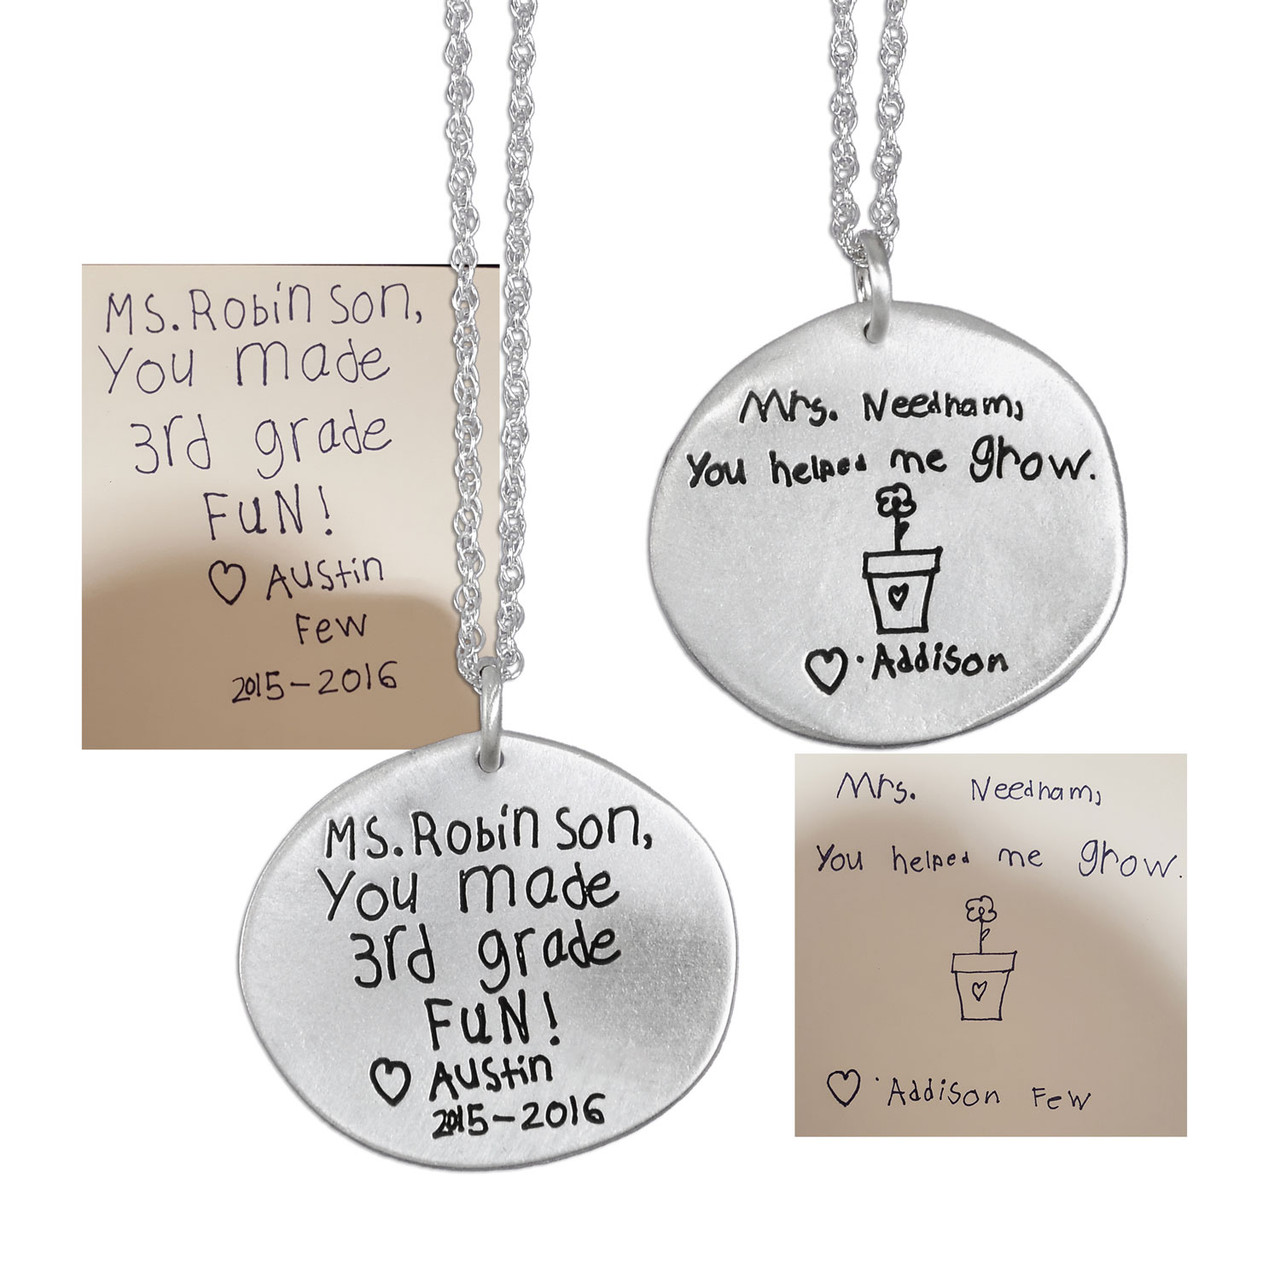 Kid's handwriting on necklace for a loved teacher, shown with original handwriting